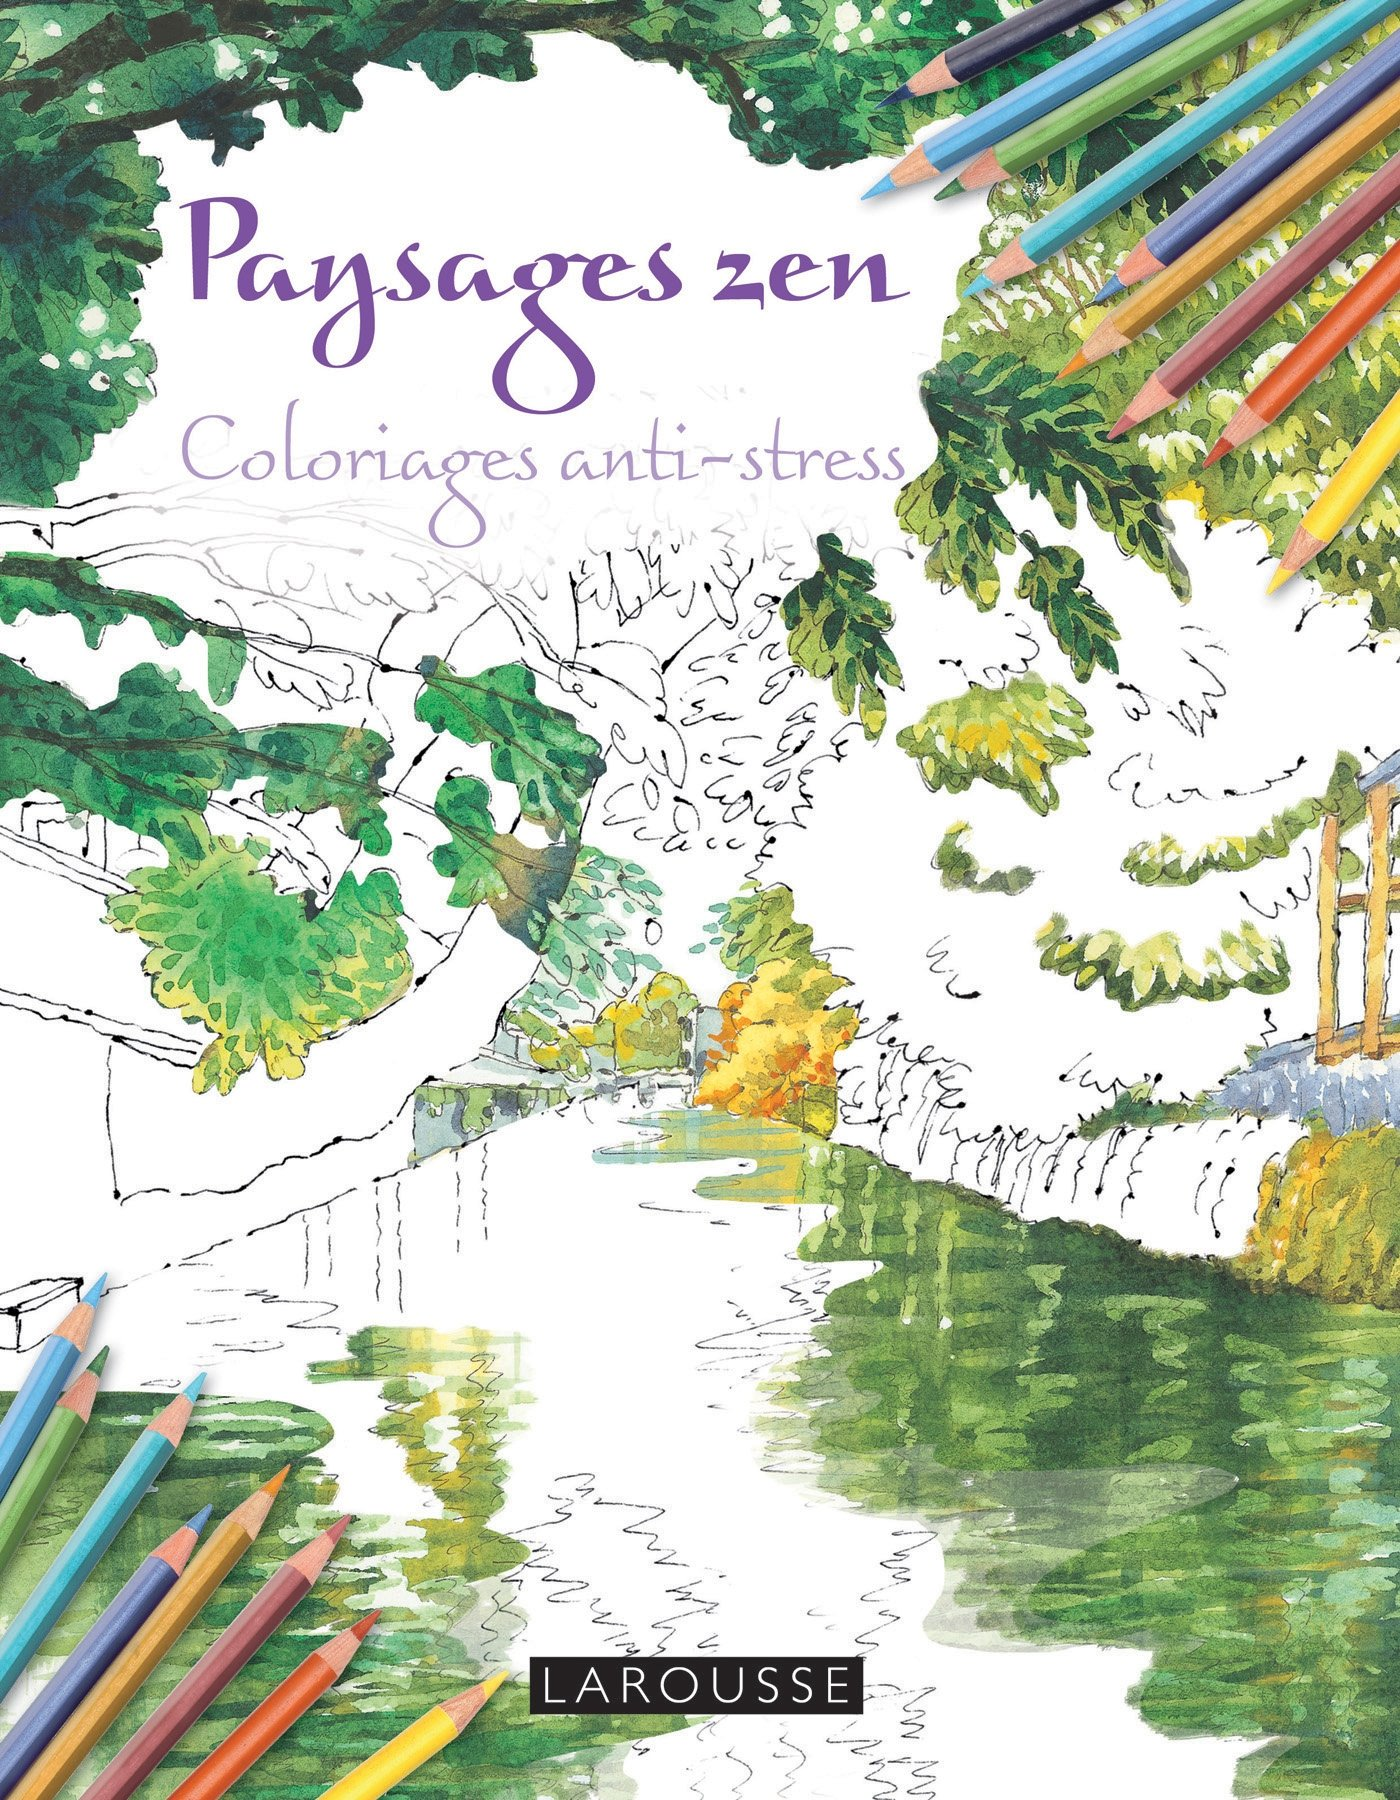 Download Paysages zen coloriages anti-stress (French Edition) ebook